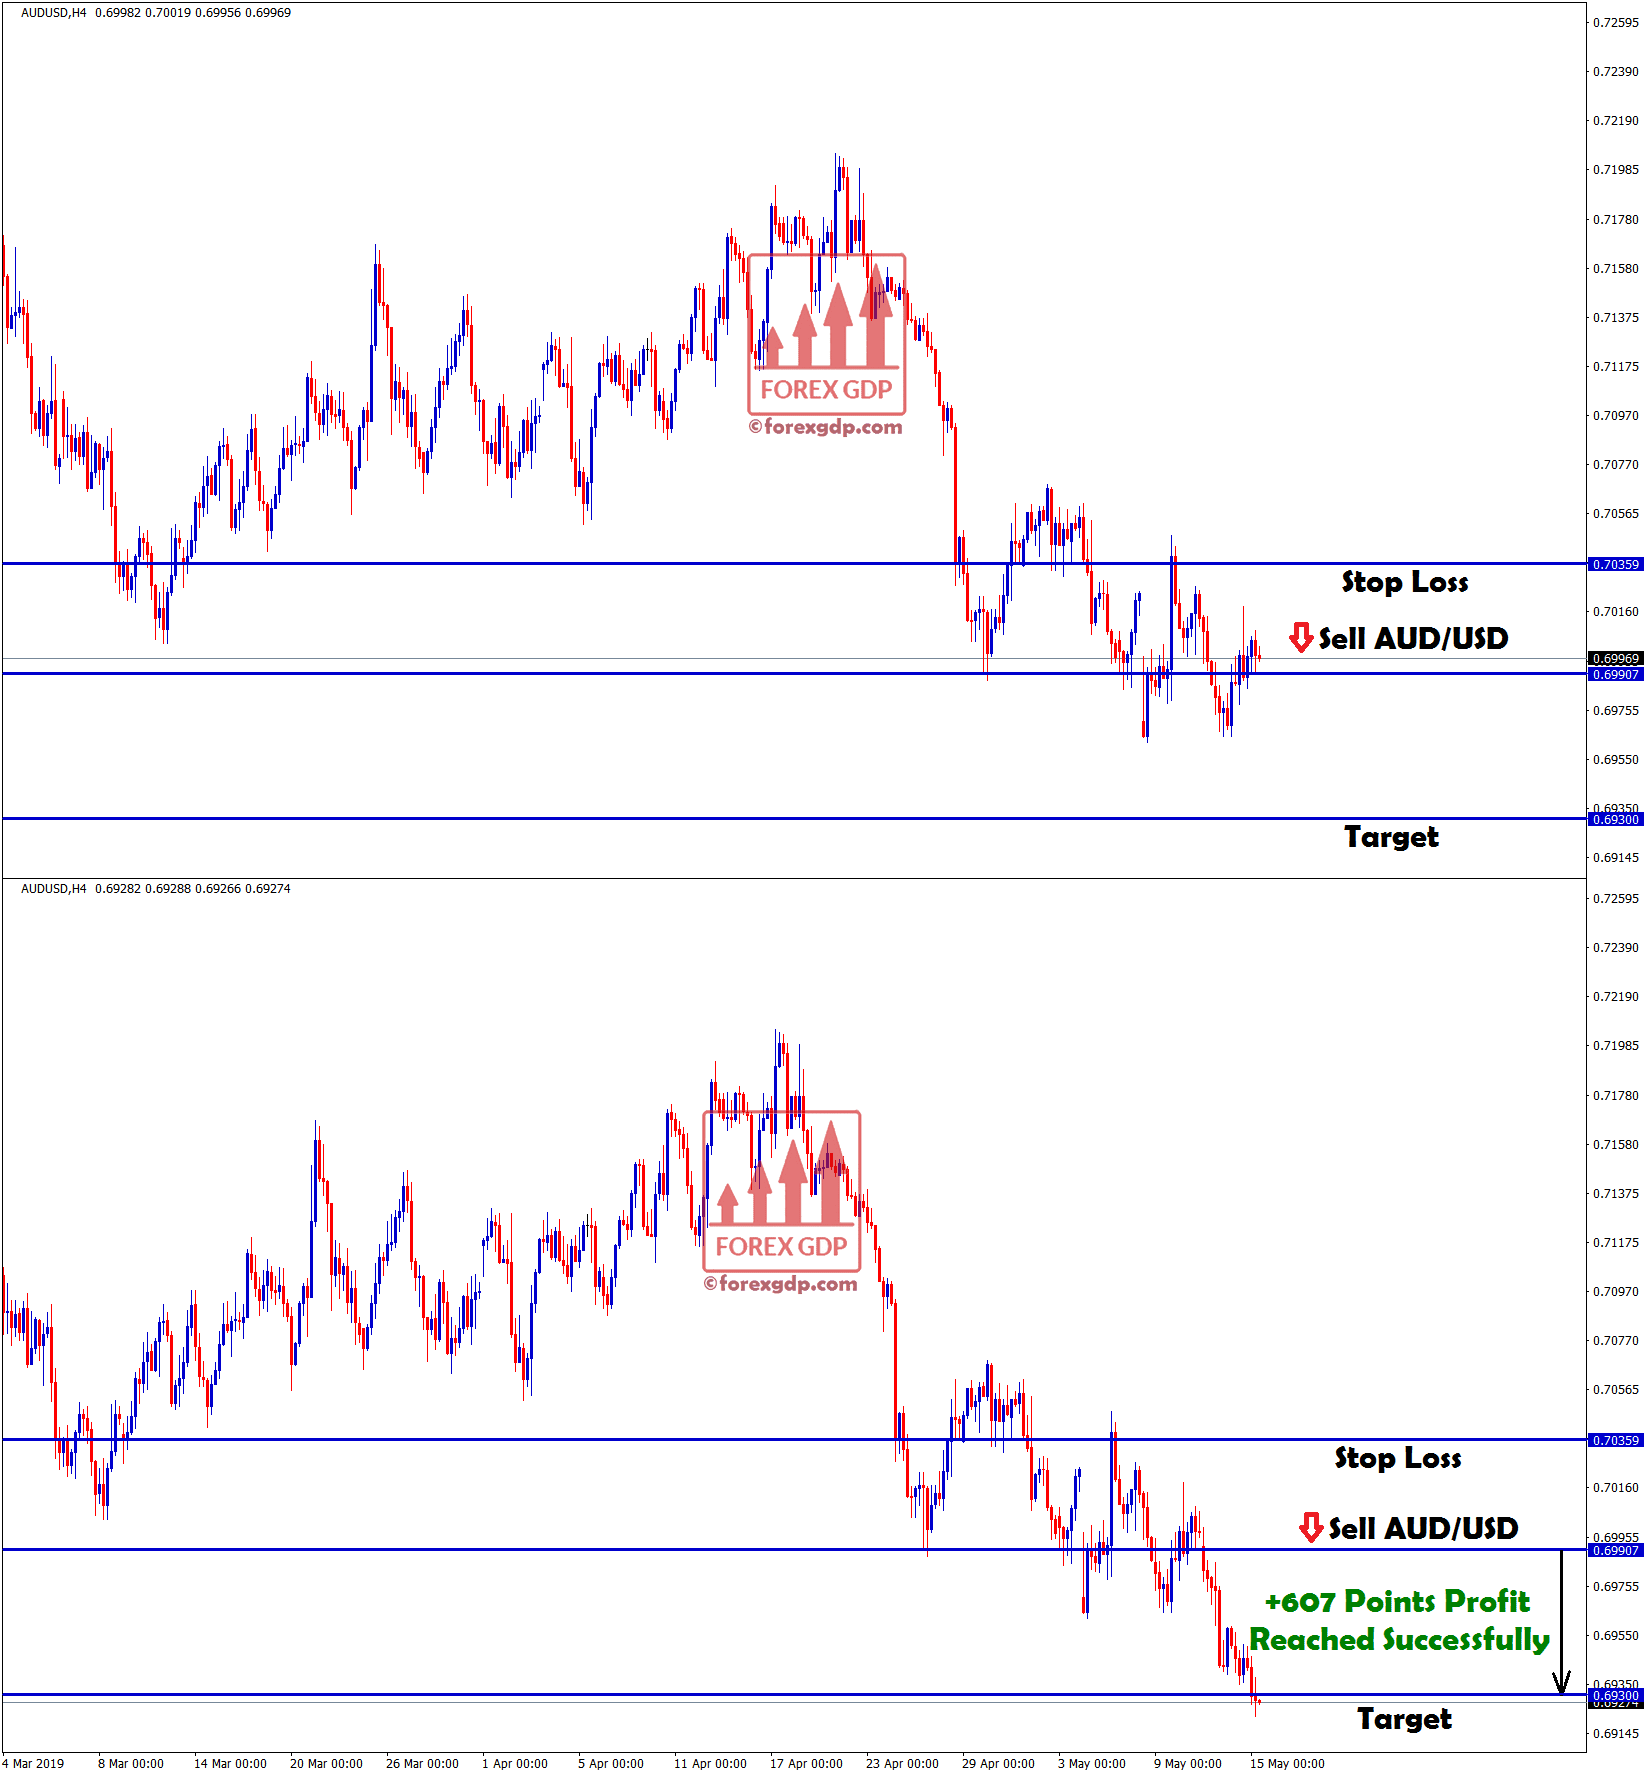 first target hit in aud usd with +607 points